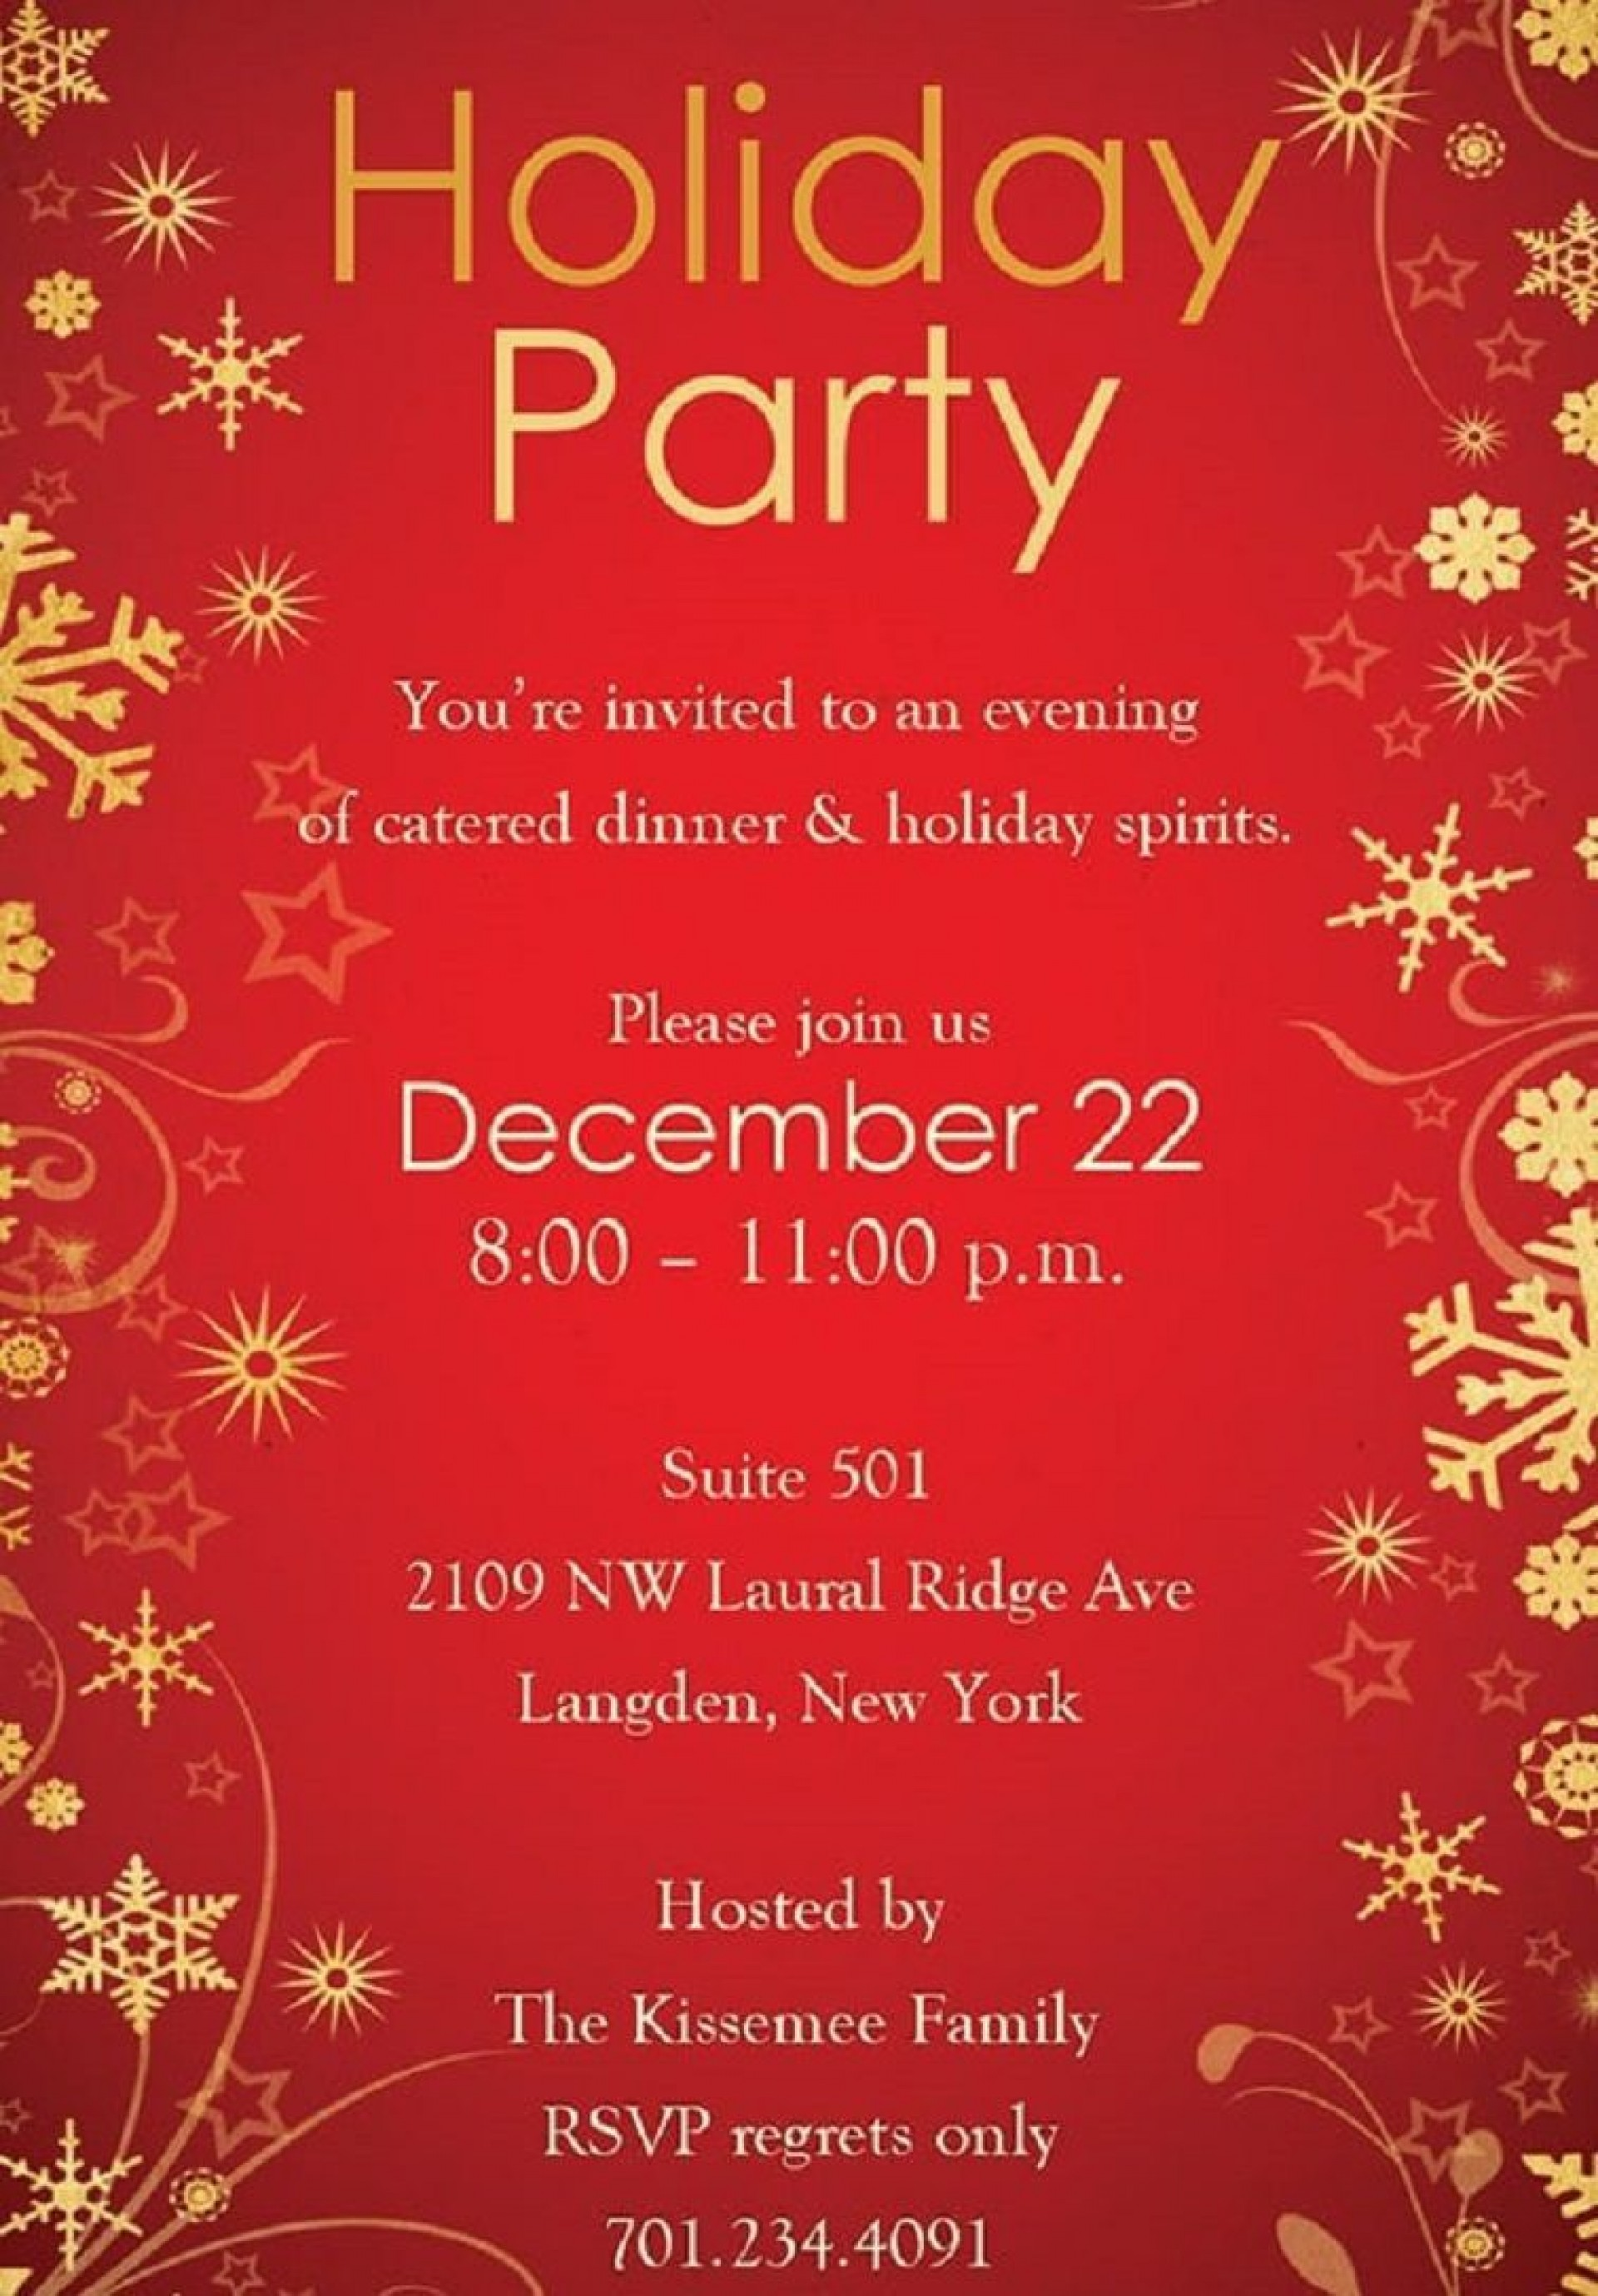 001 Awful Free Holiday Invitation Template Sample  Online Party Christma1920